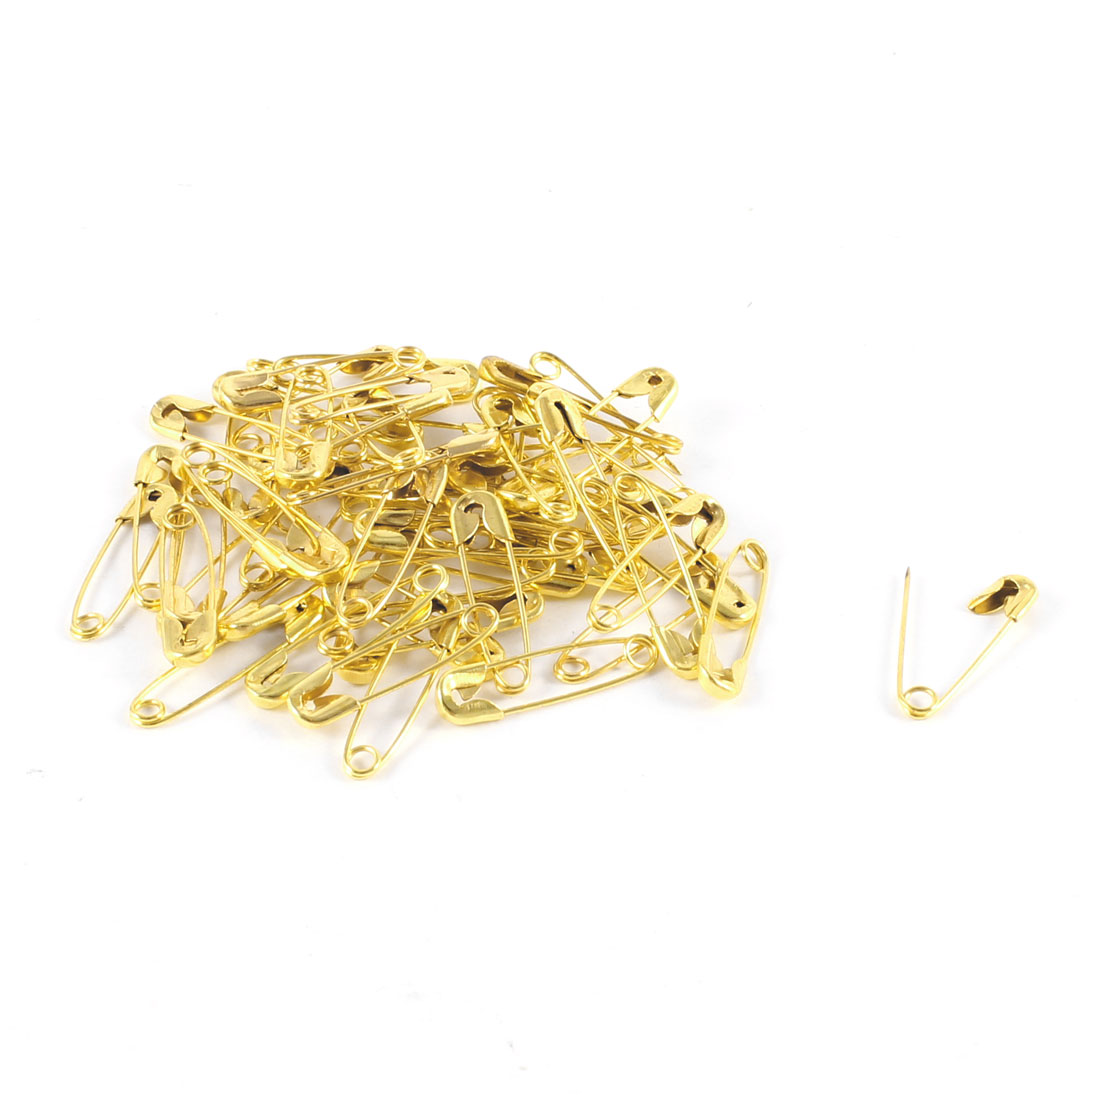 "58 Pcs Gold Tone 1"" Length Metal Locking Cloth Nappy Diaper Safety Pins"